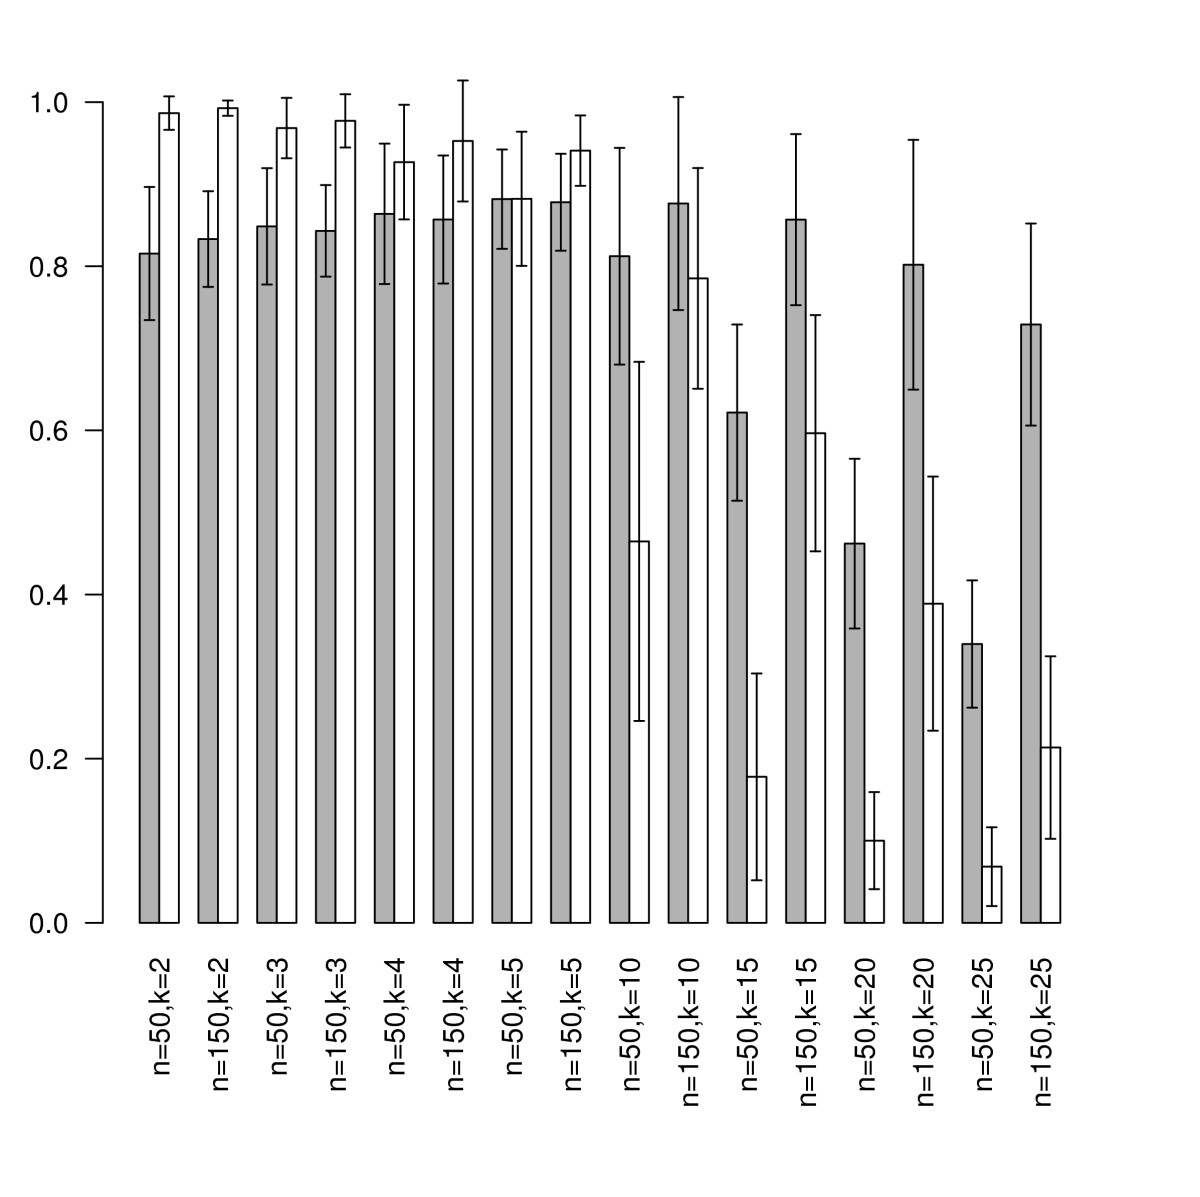 https://static-content.springer.com/image/art%3A10.1186%2F1471-2105-11-561/MediaObjects/12859_2010_Article_4144_Fig2_HTML.jpg